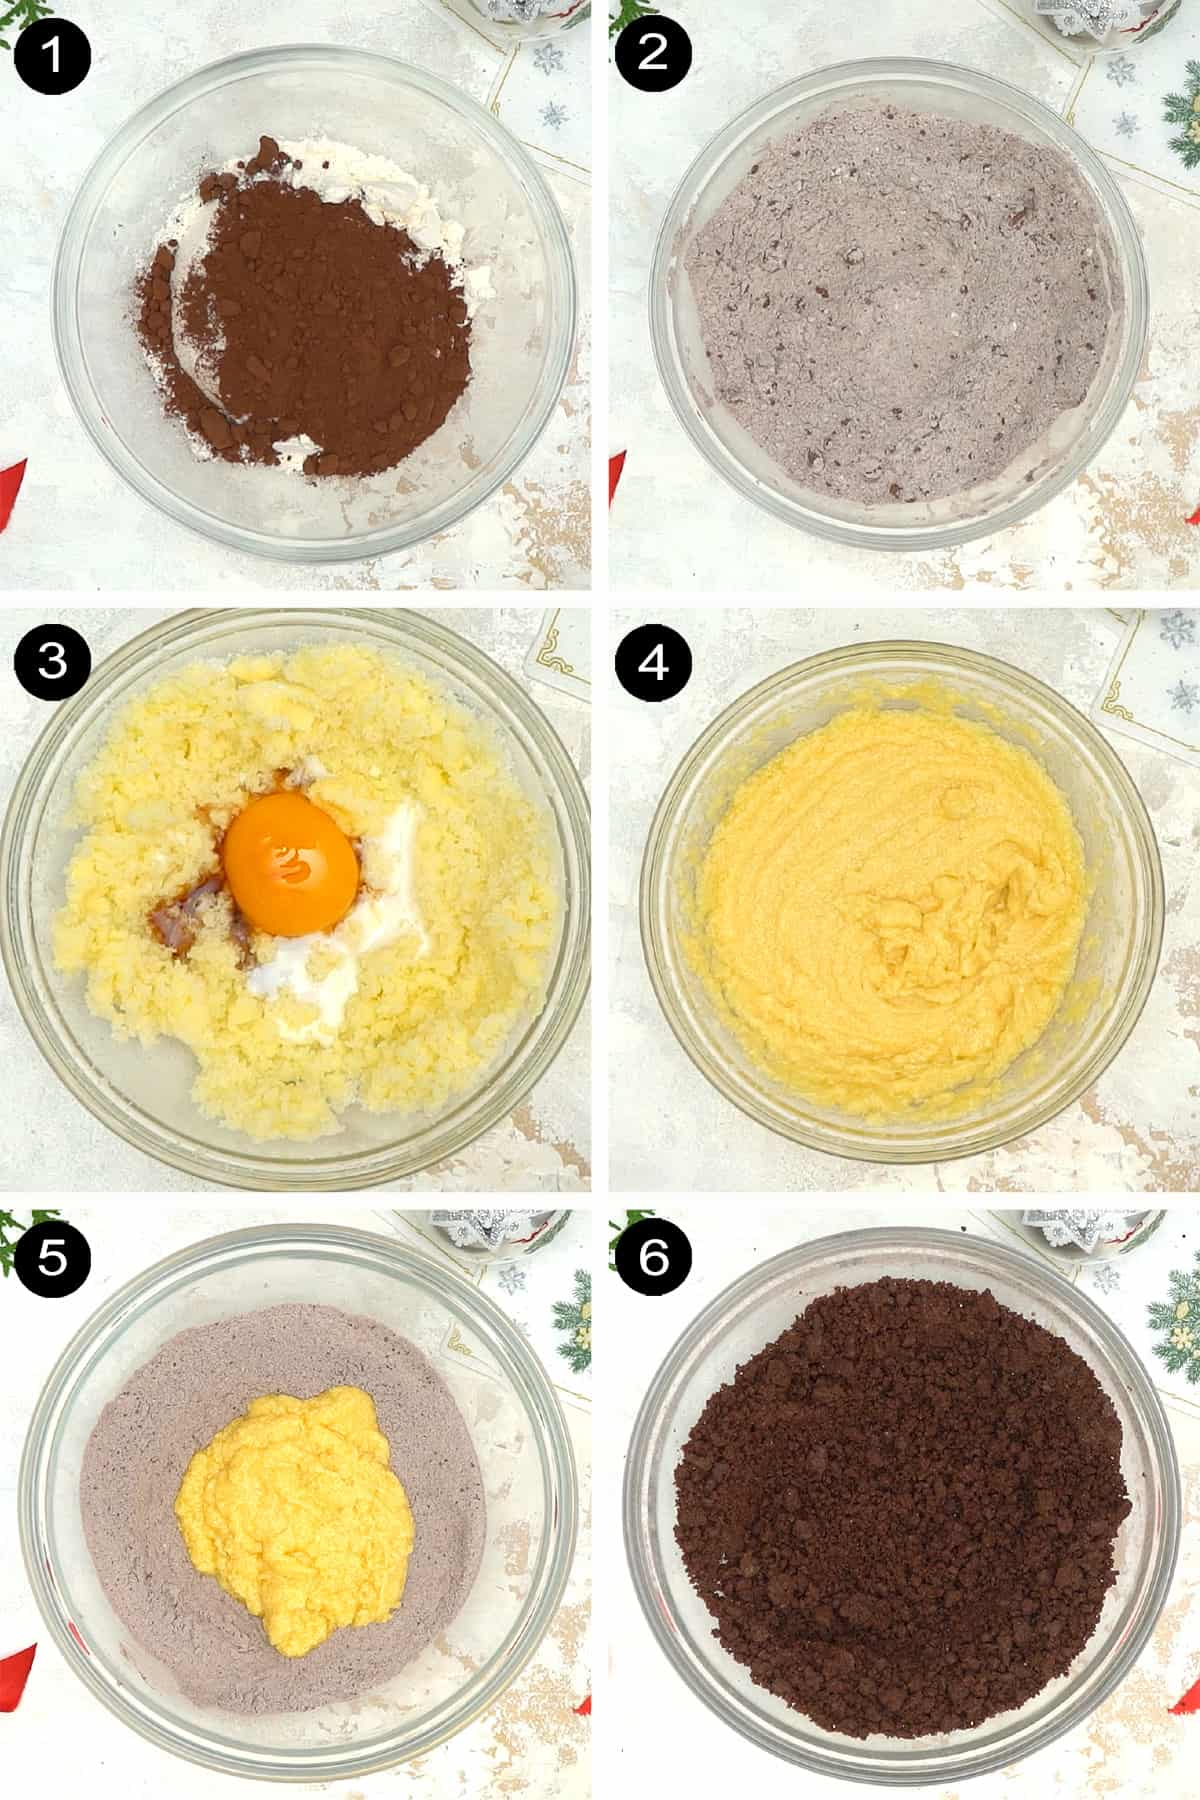 Steps to make turtle thumbprint cookies 1-6.